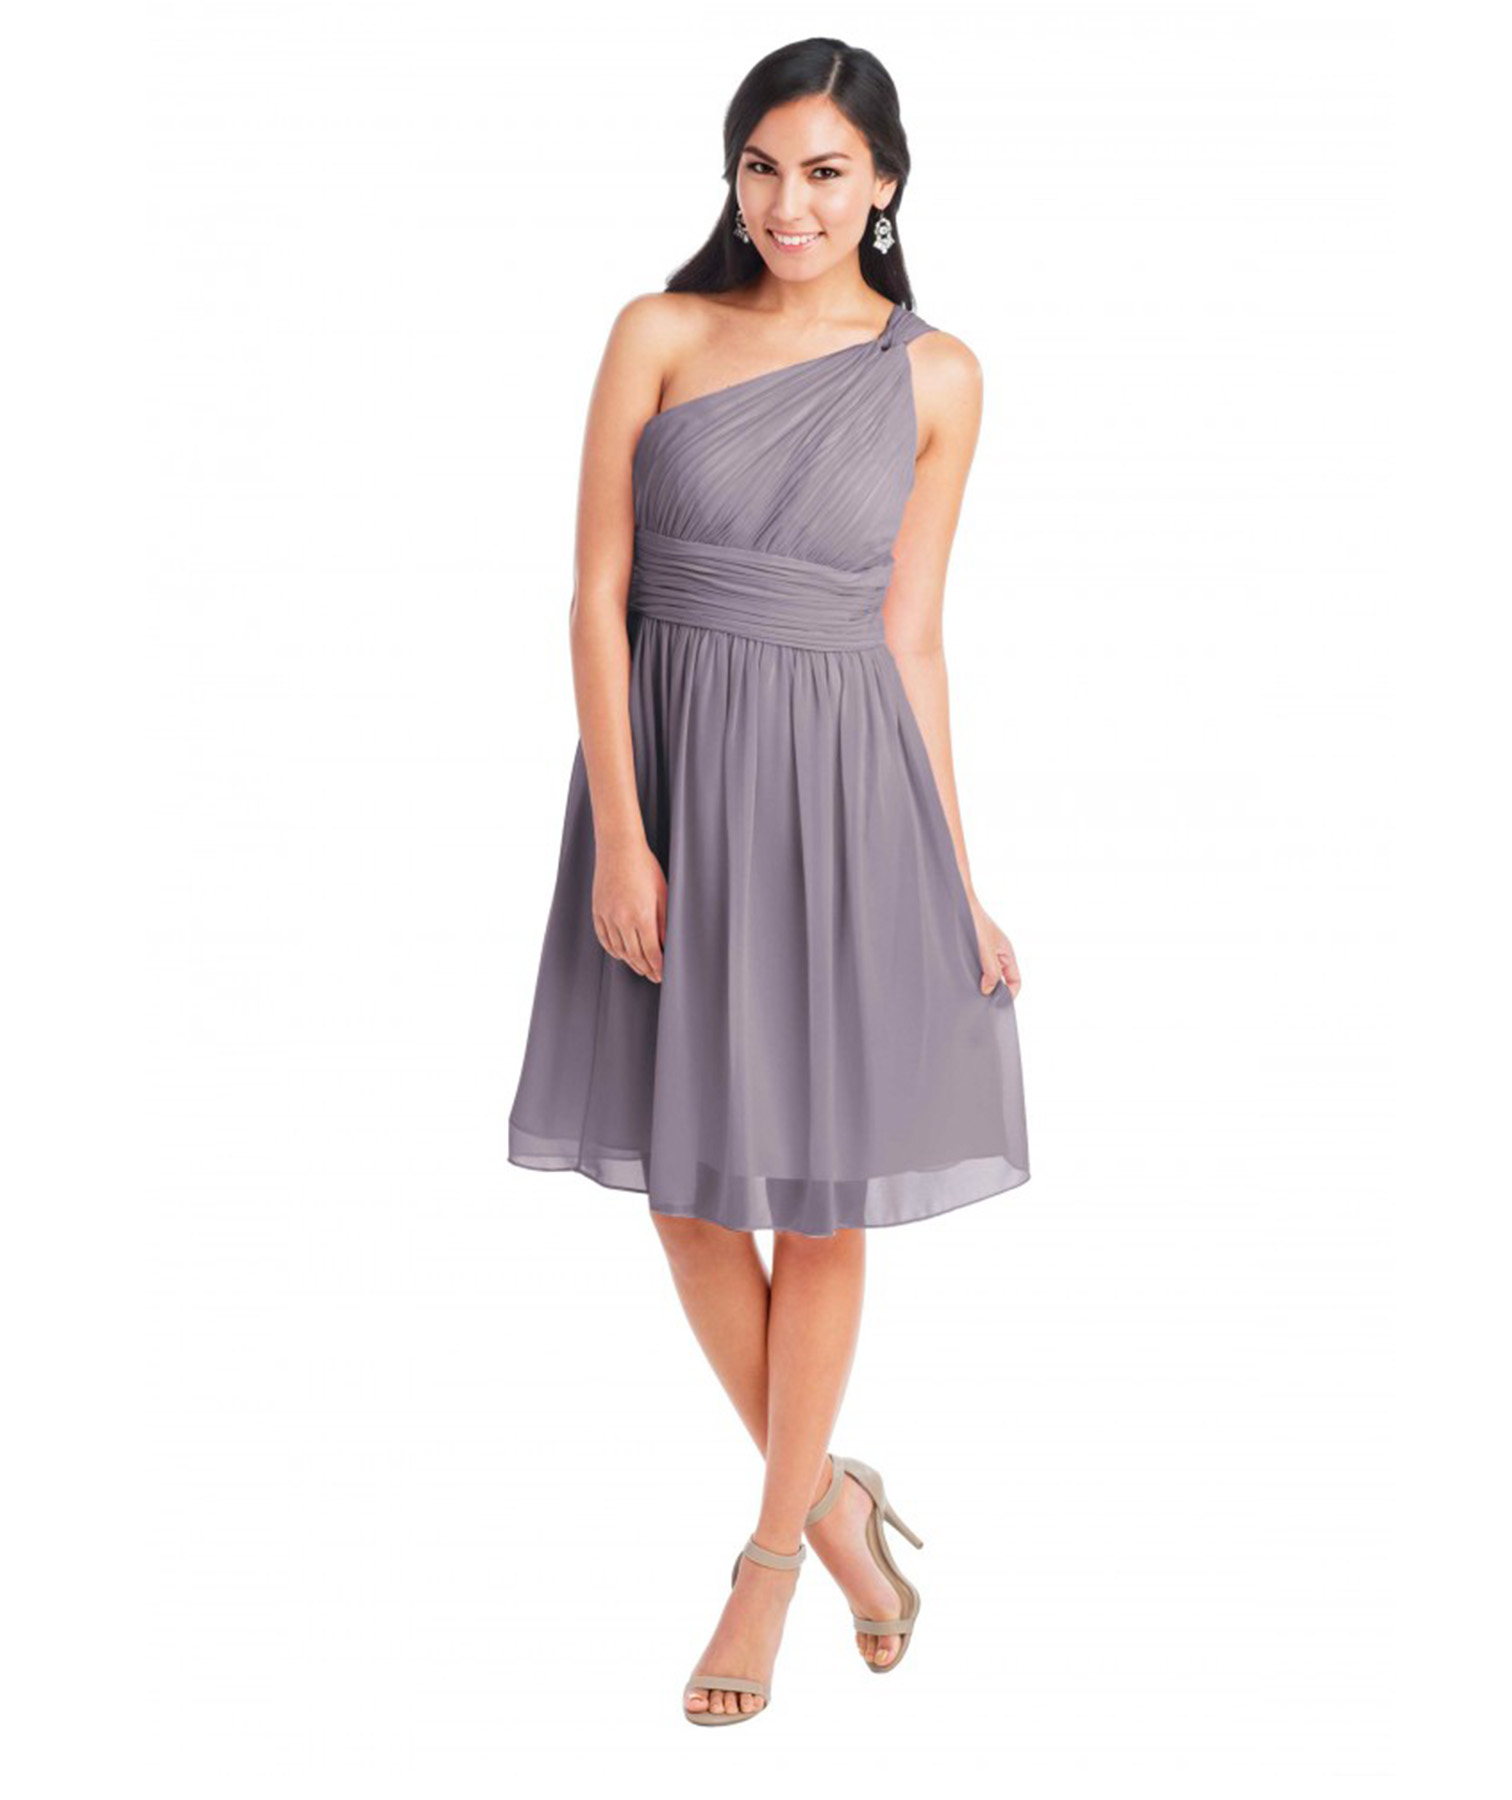 Beautiful spring wedding guest dresses to rent real simple for Rent dress for wedding guest